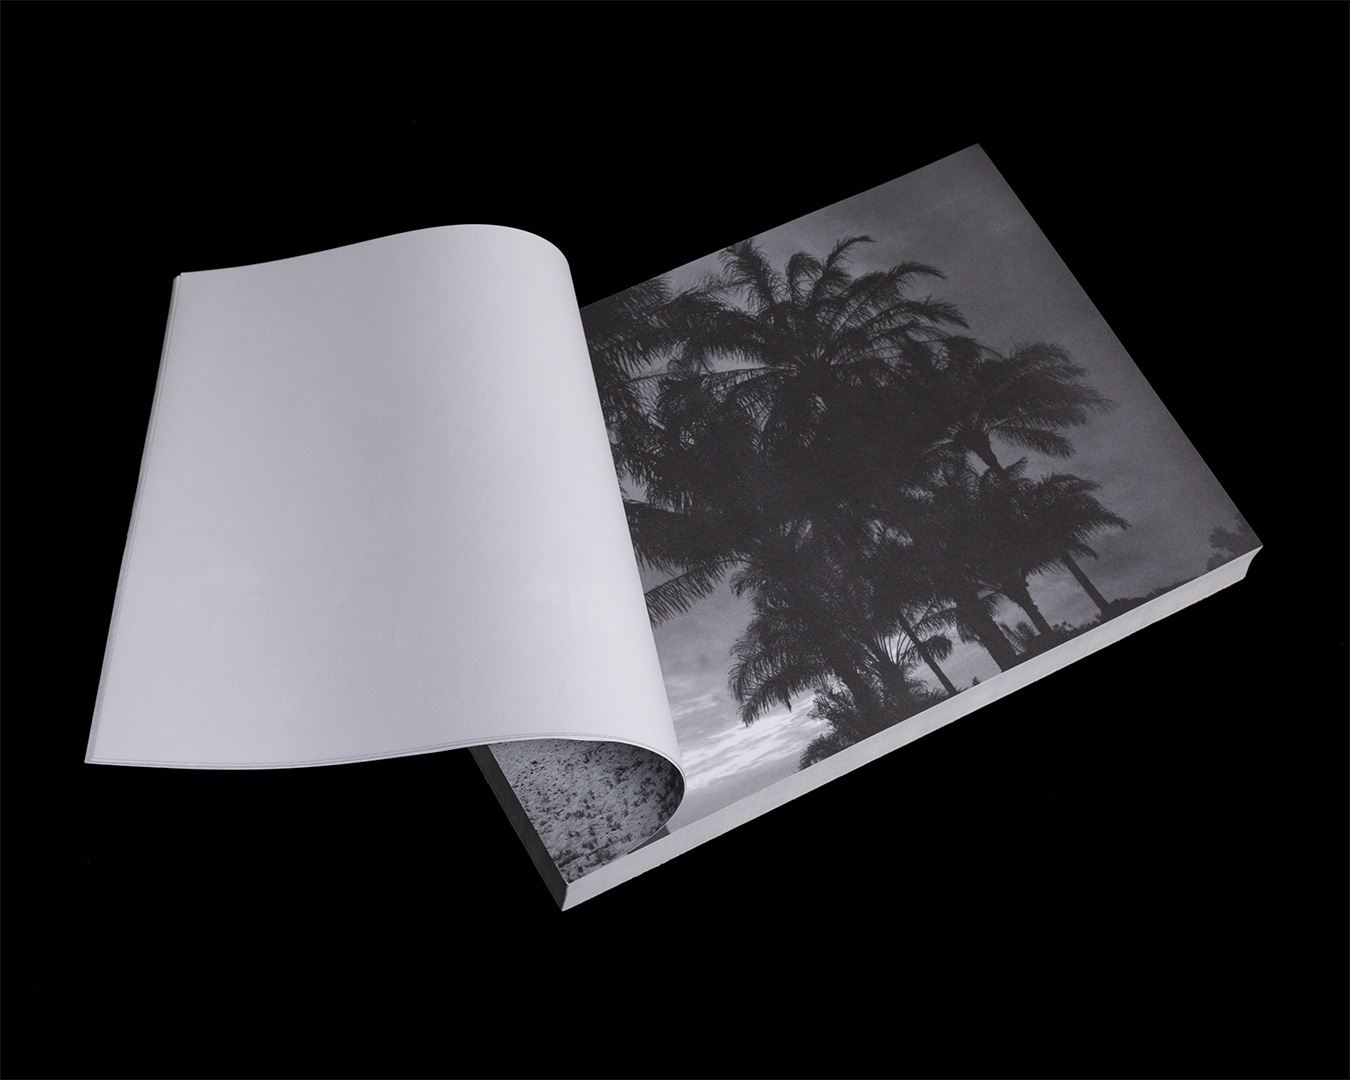 Stéphanie Gygax – Useful Landscape – 400 x 270 mm, 300 pages  10 copies